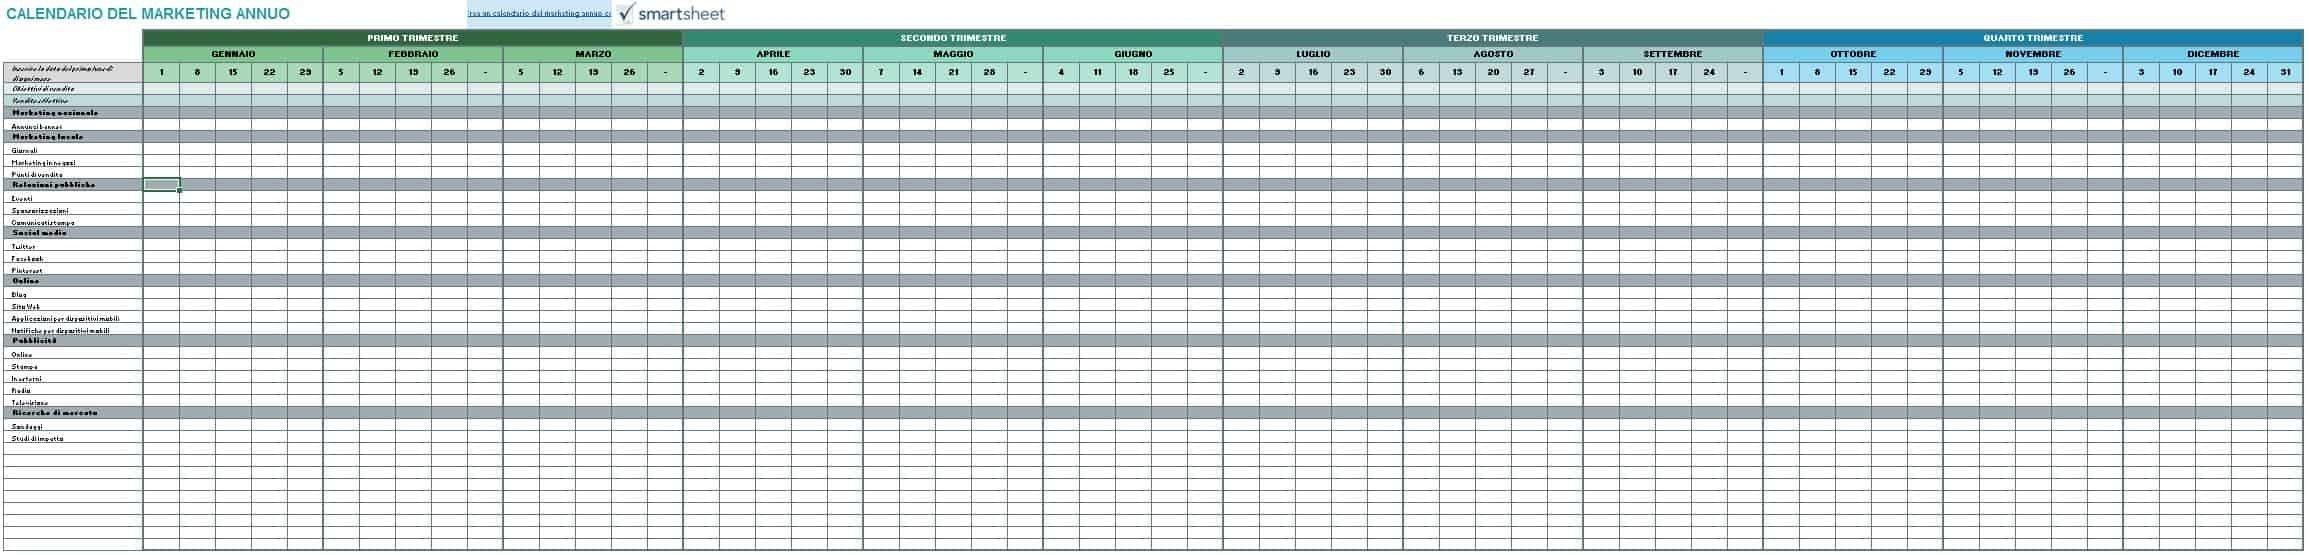 9 Modelli Di Calendari Di Marketing Gratuiti Di Excel